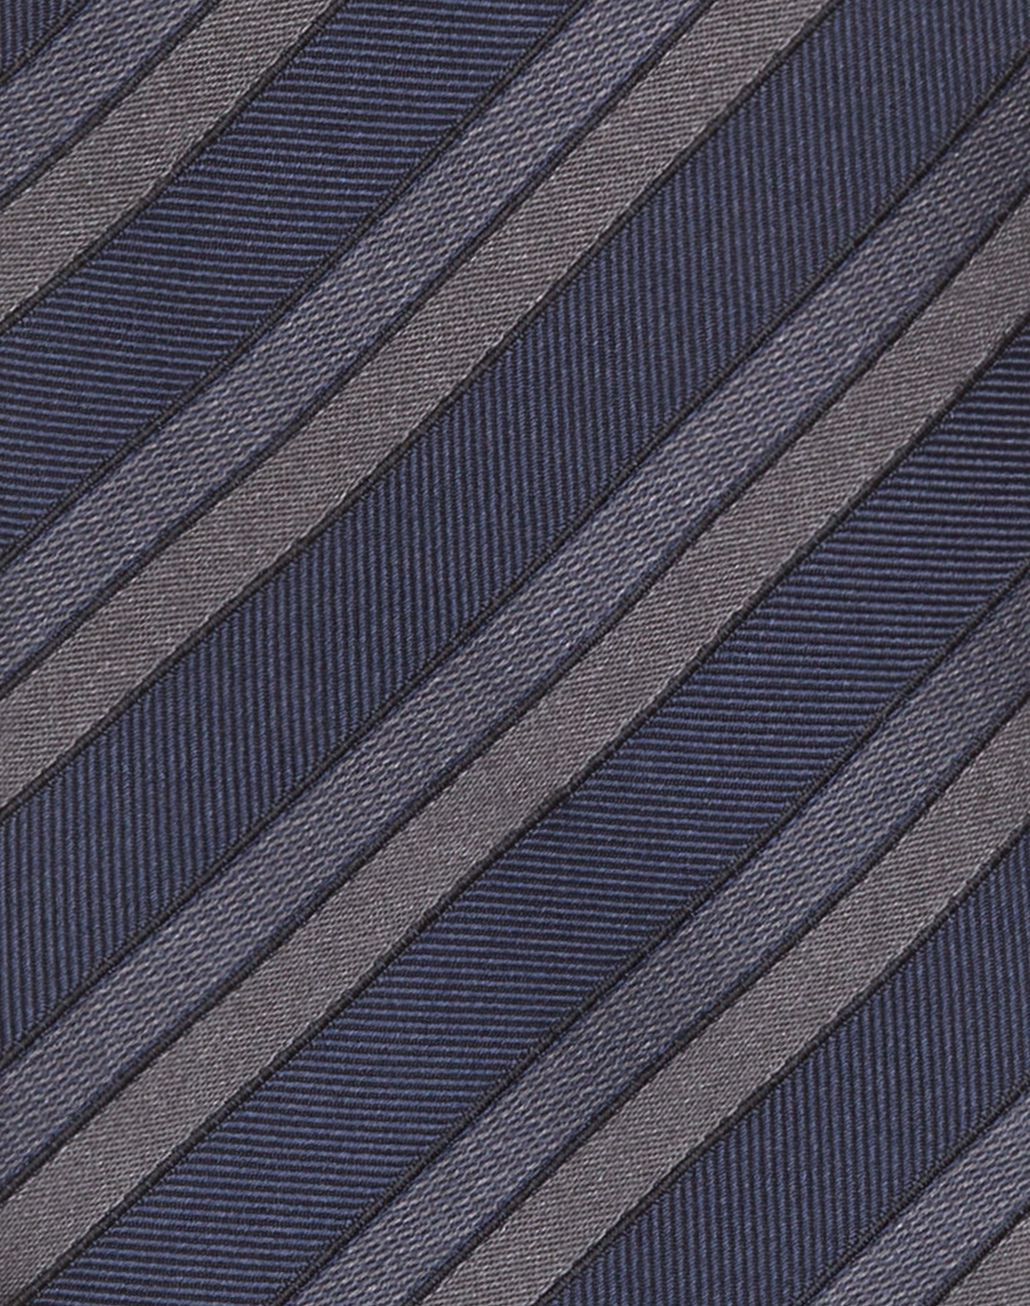 BRIONI Gray and Navy Blue Regimental Tie Tie & Pocket Square U d